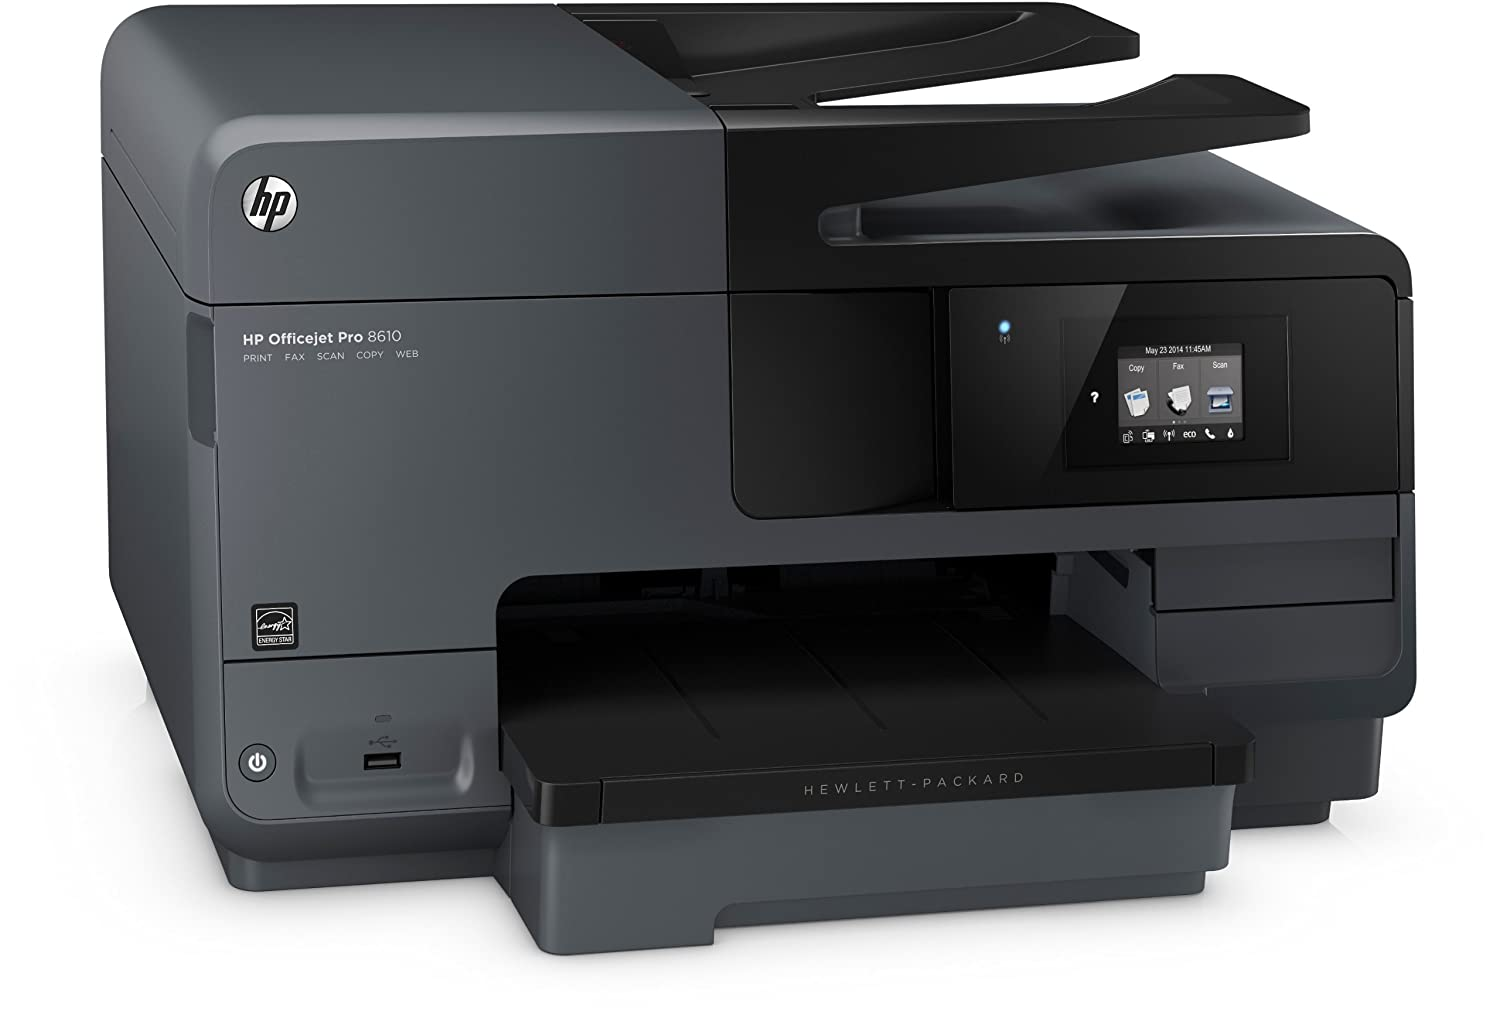 hp officejet pro 8610 e all in one printer amazon co uk computers